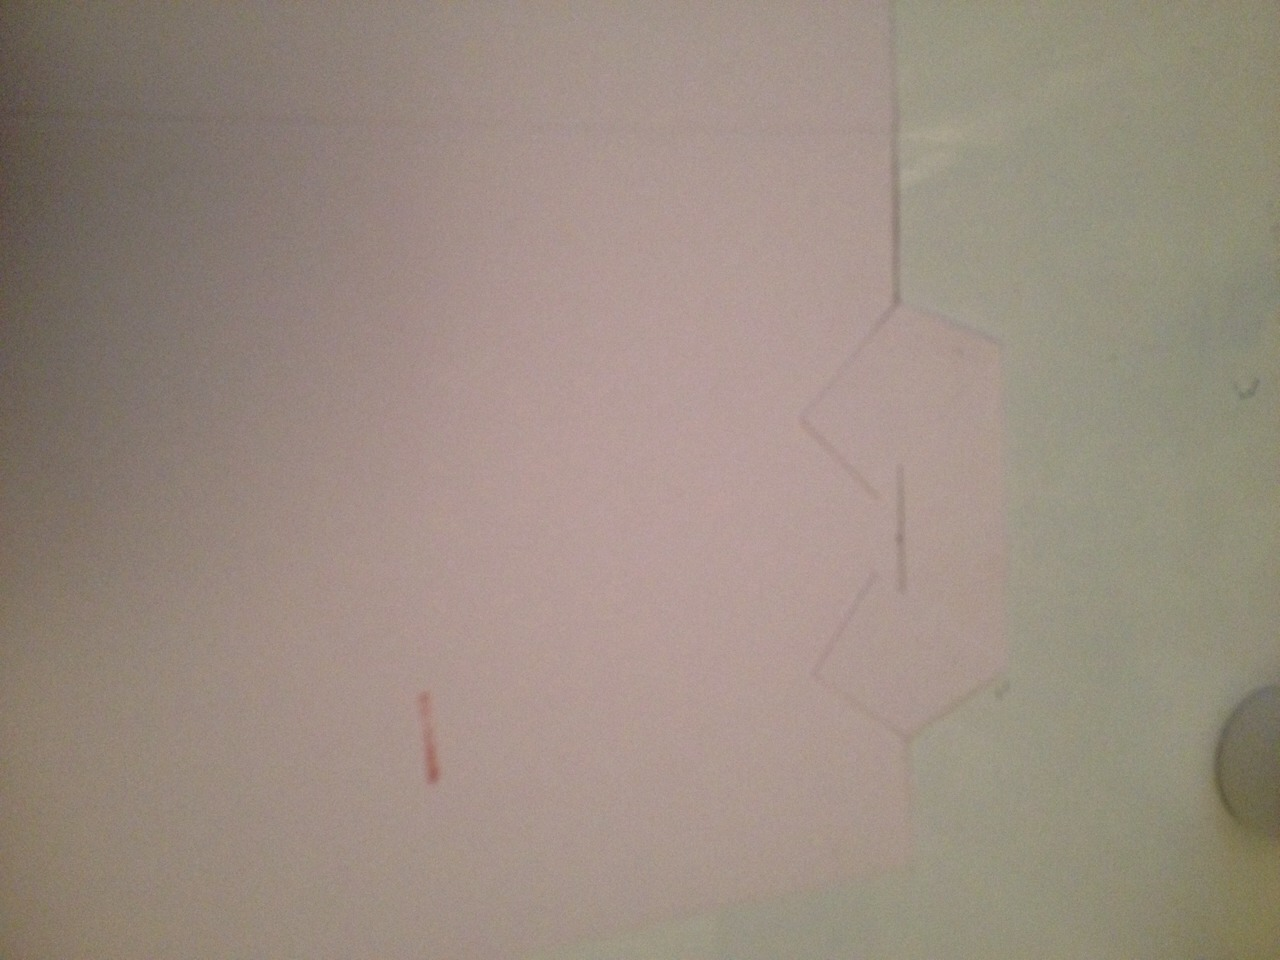 Make a snip 2.3cm from each side and stick them down